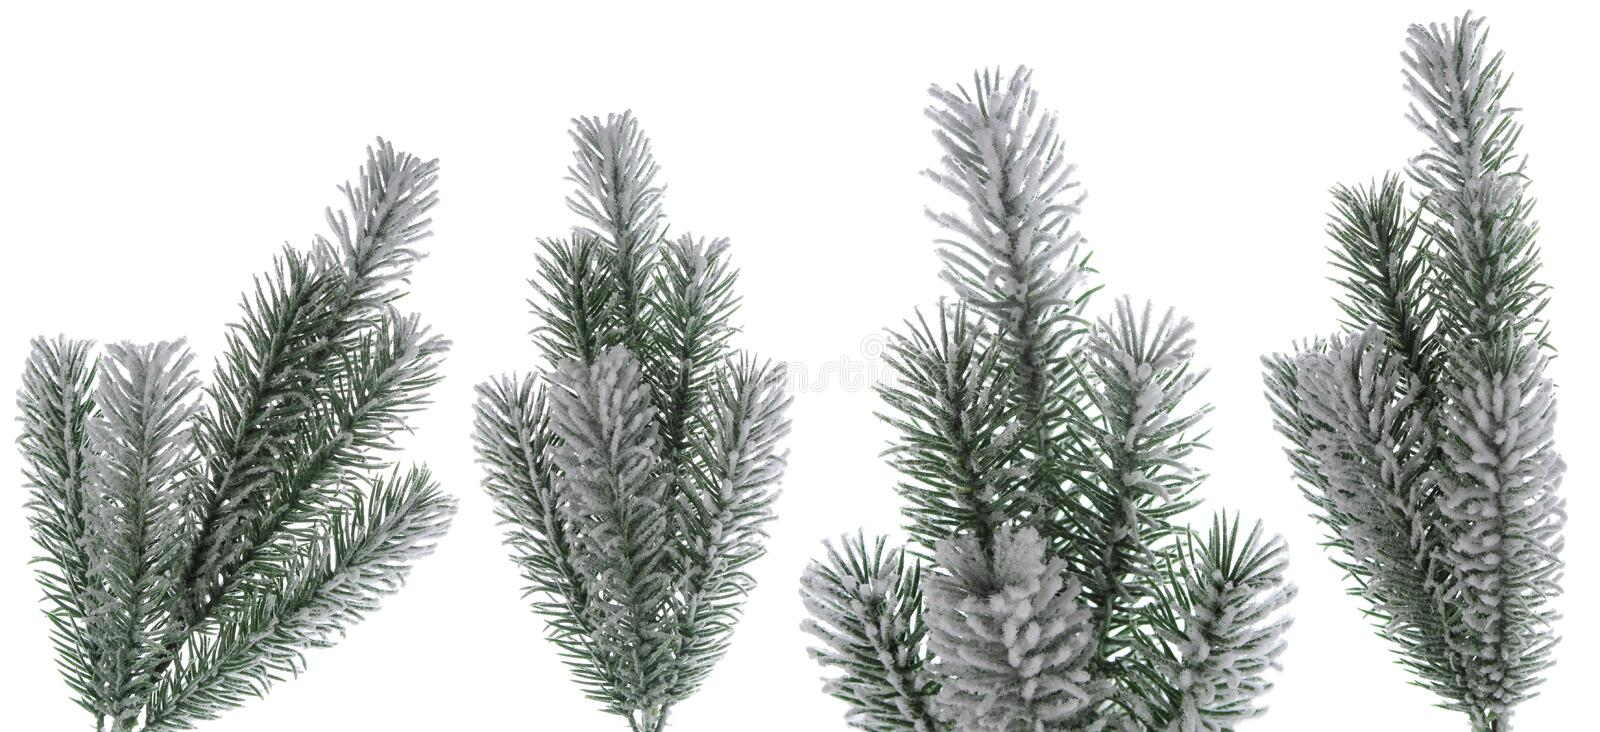 Christmas snow fir tree branch set as part of  winter design isolated on white background stock image